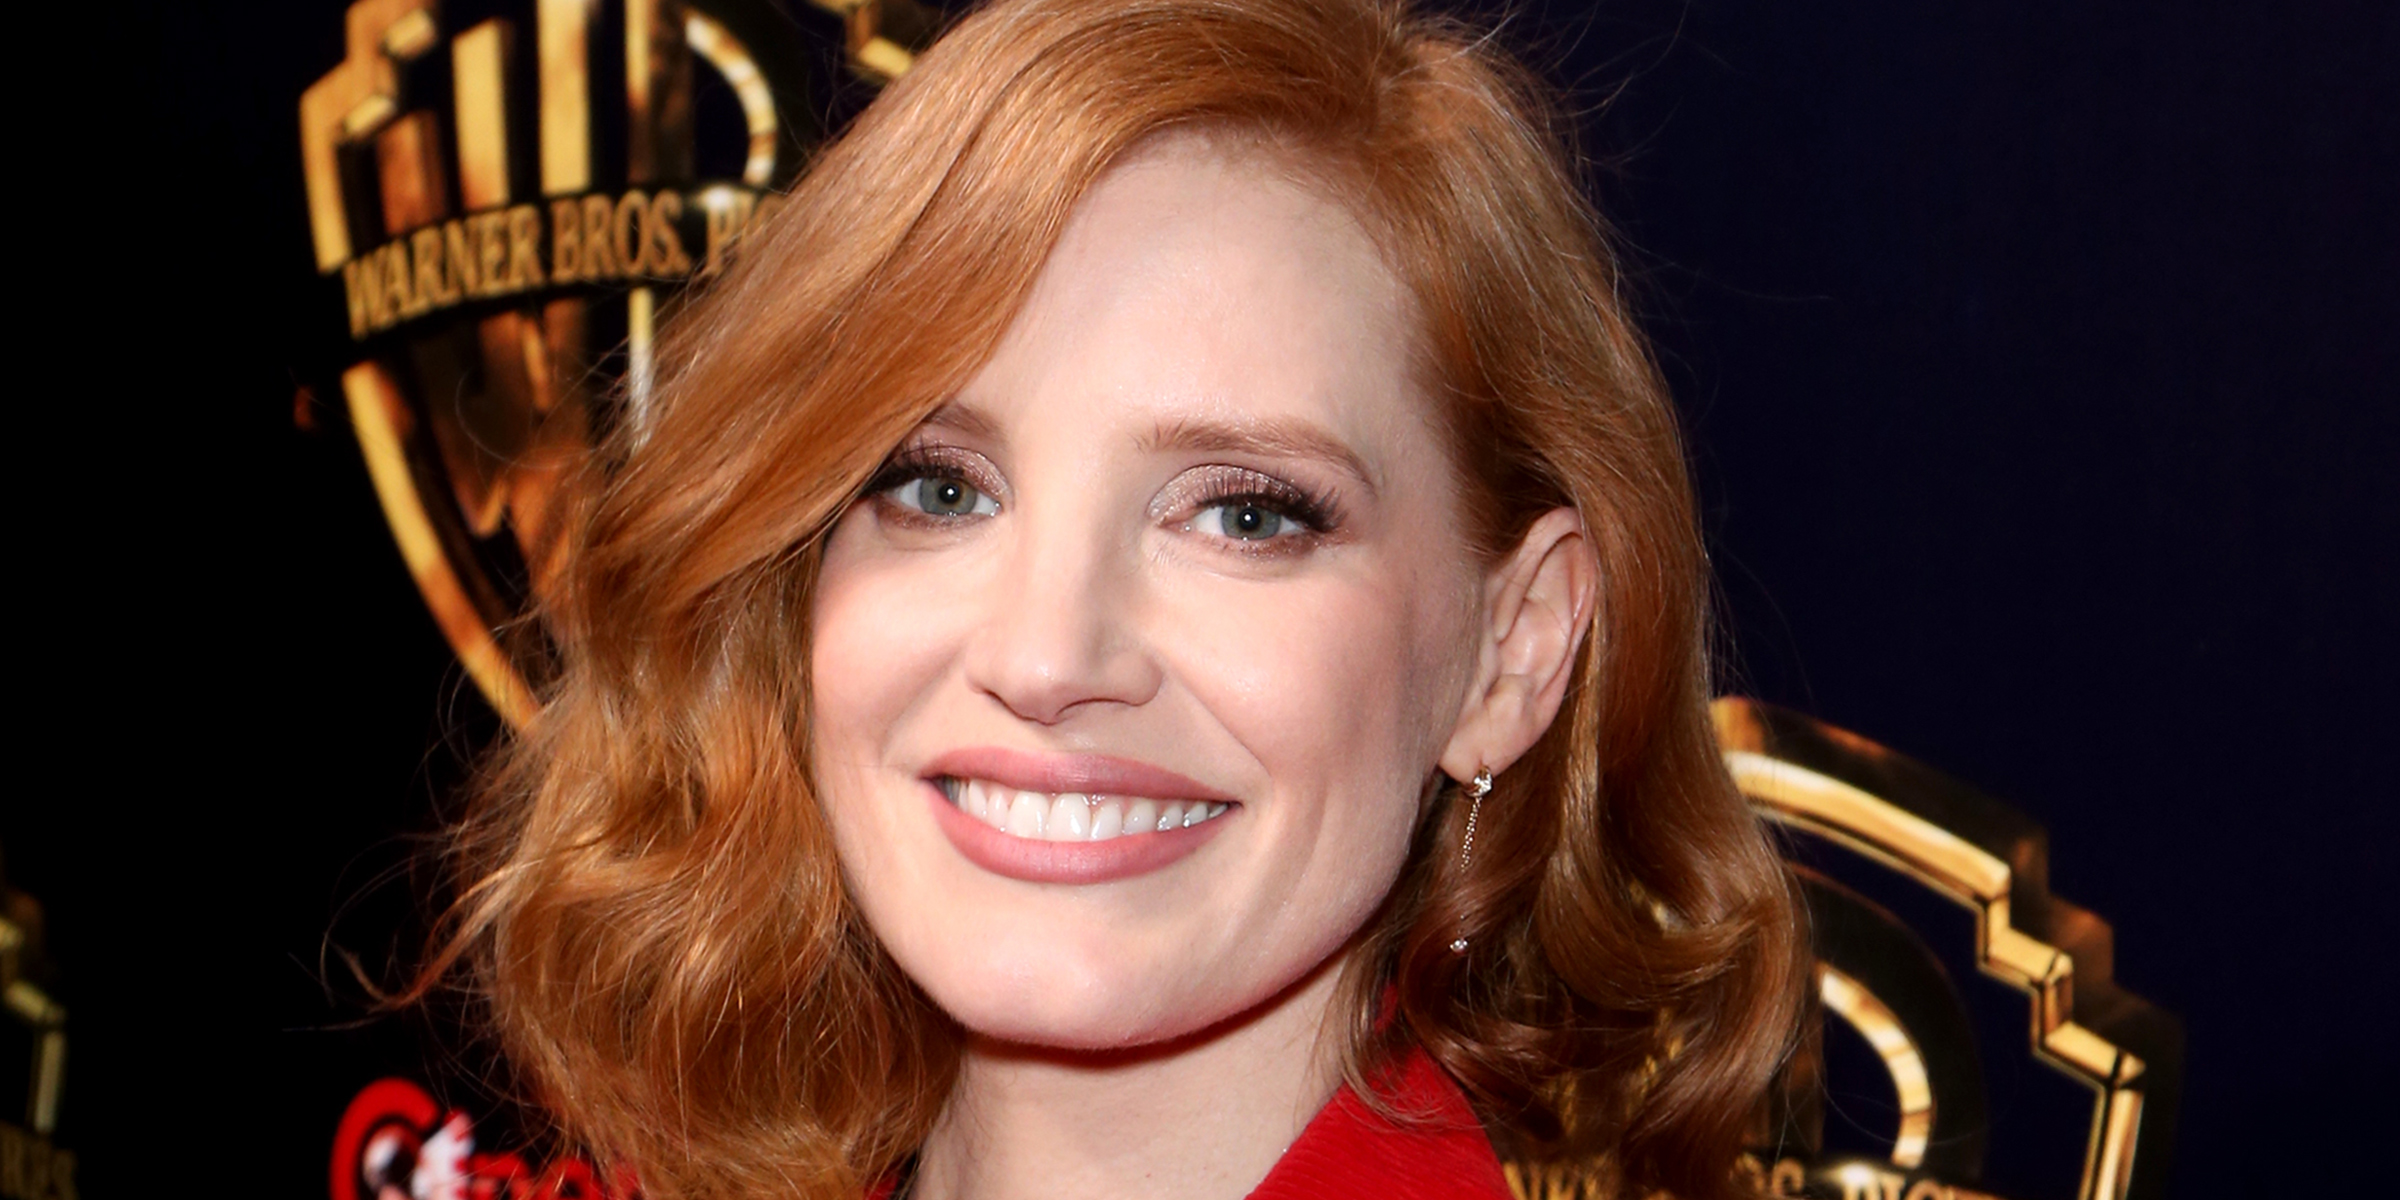 Jessica Chastain Shows Off Her New Bangs And Bob See The Photo